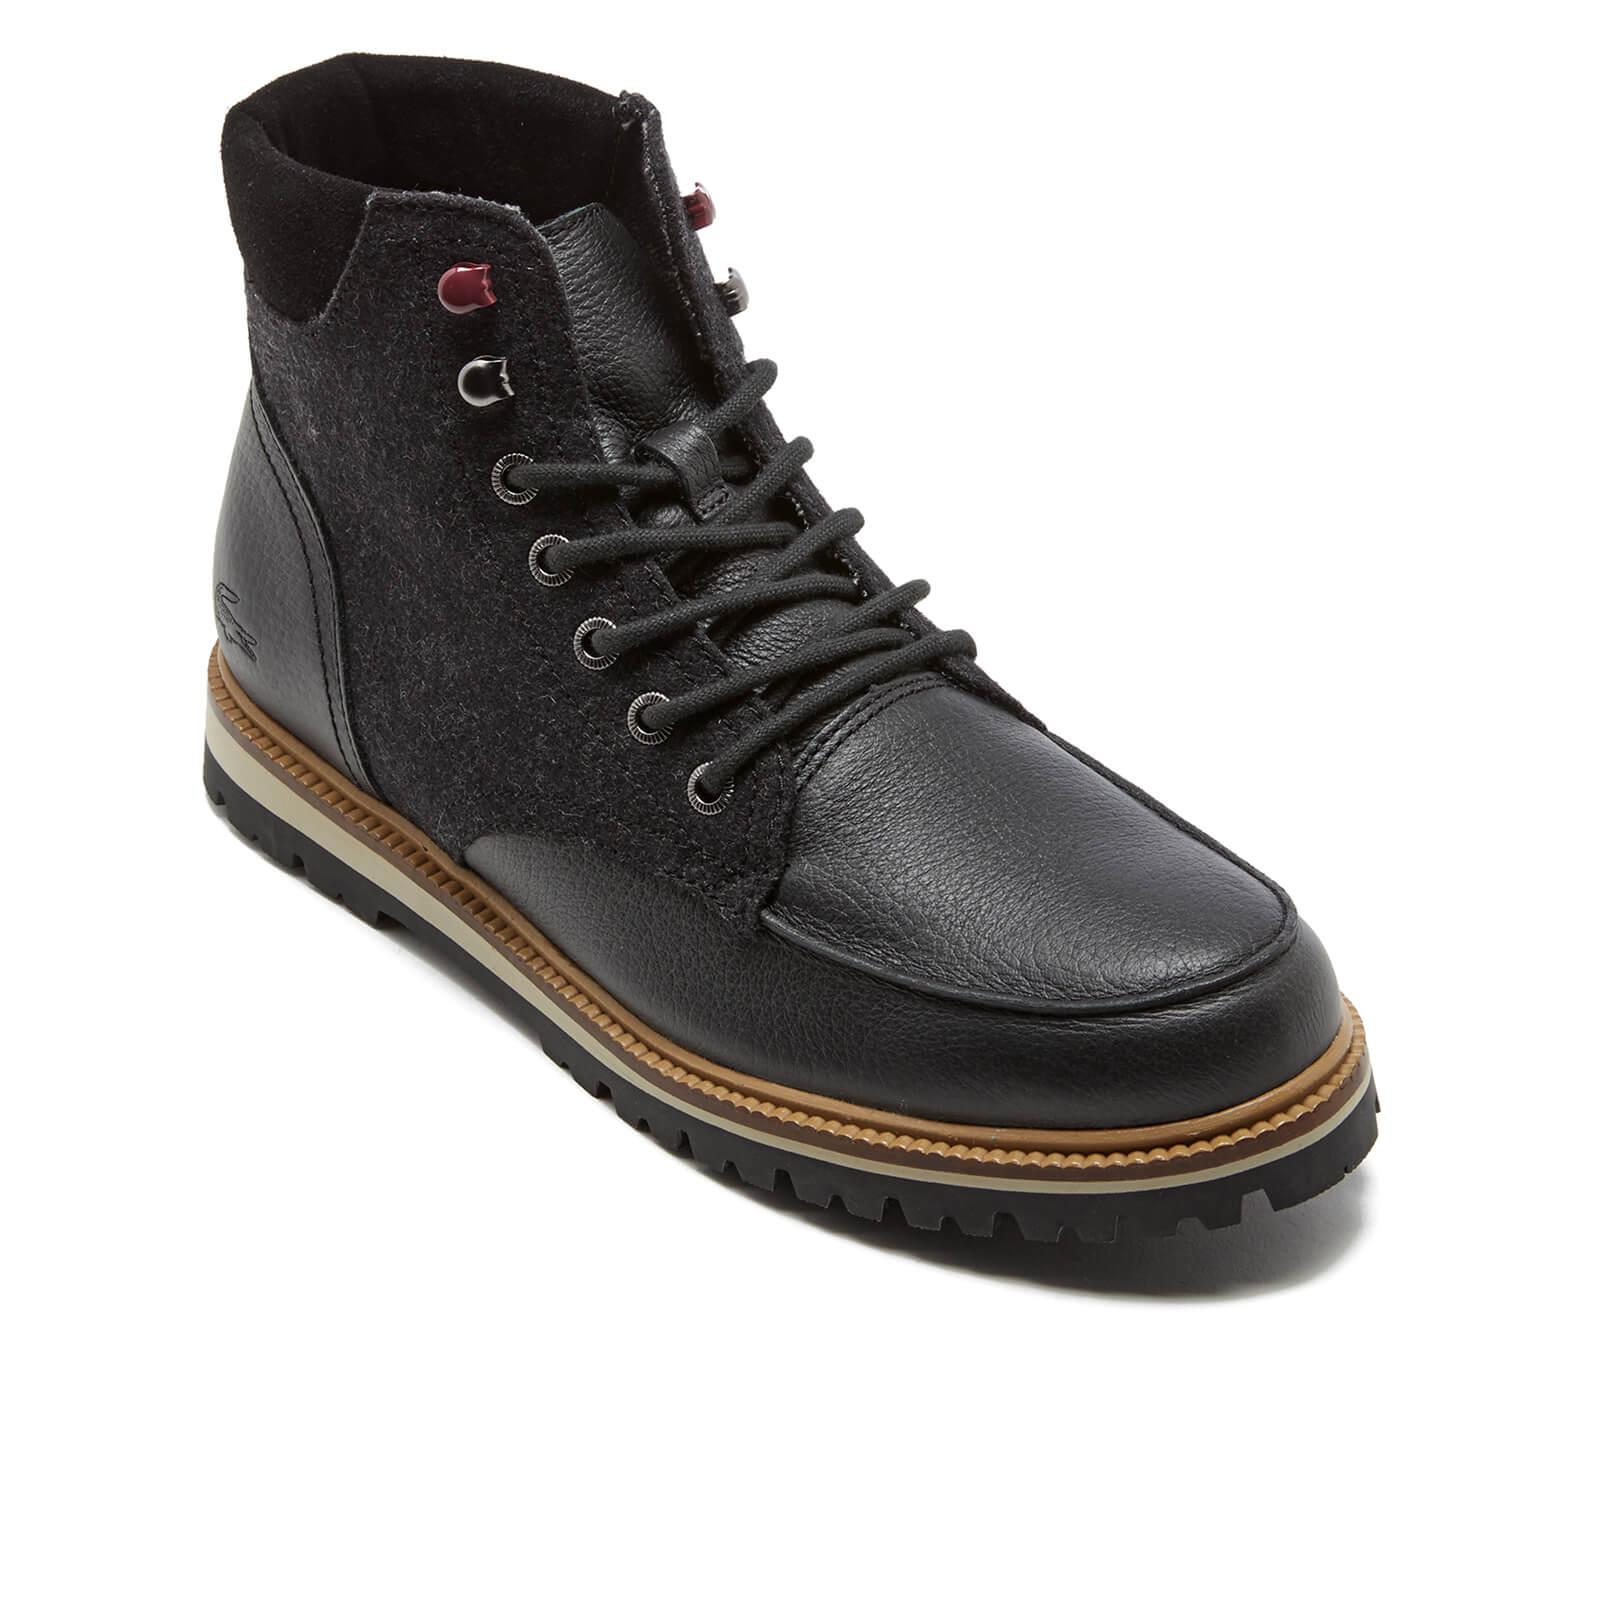 d6359b3468744d Lacoste - Black Men s Montbard 316 2 Boots for Men - Lyst. View fullscreen